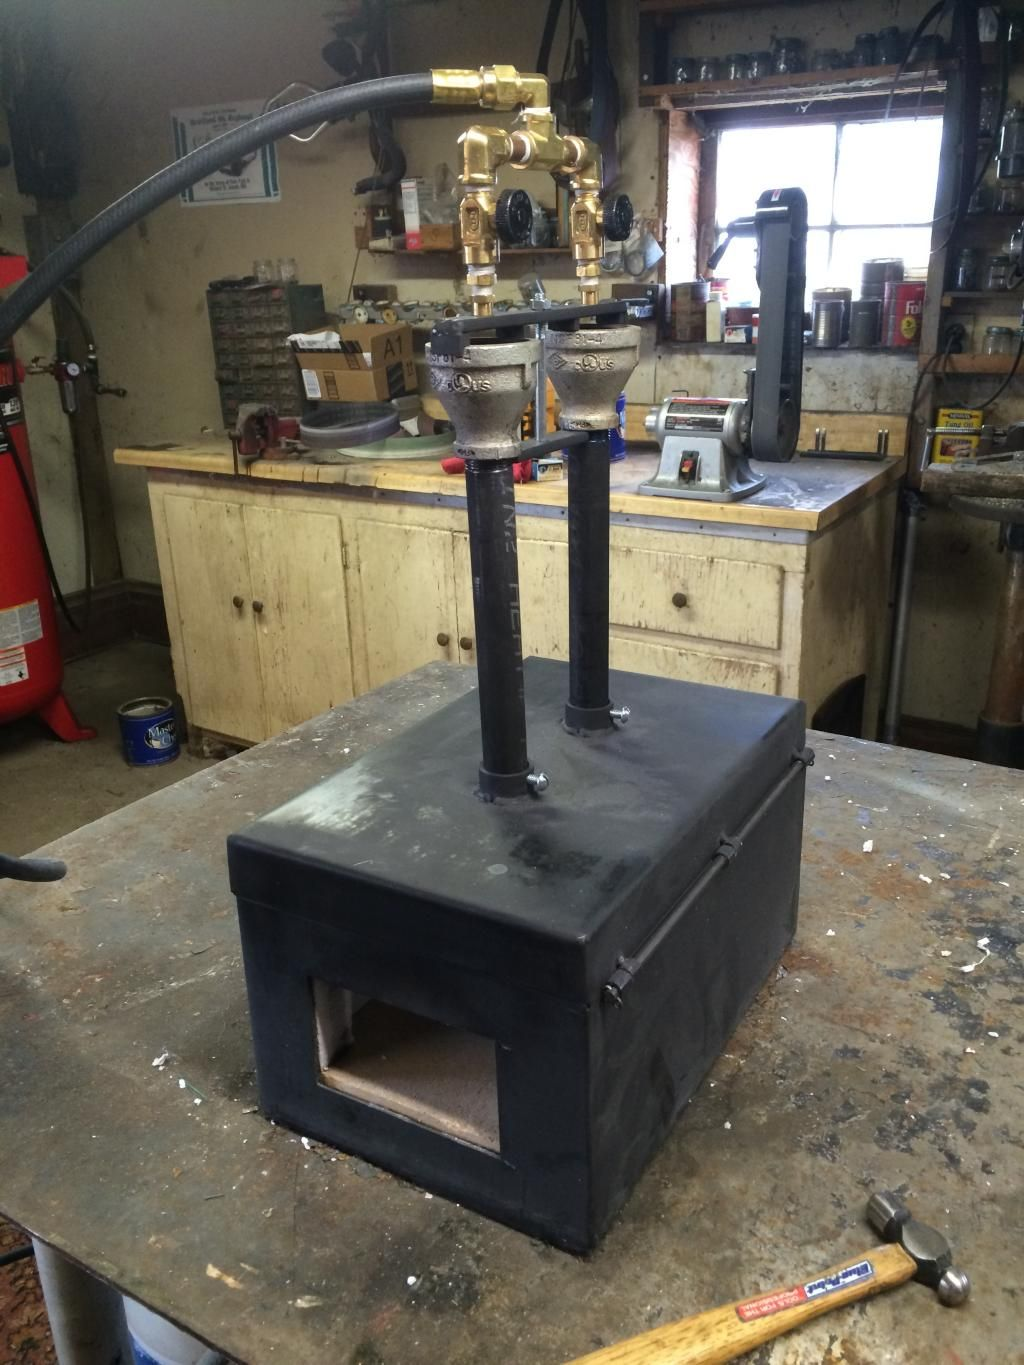 New Majestic Forge - a couple of questions - Pictures.